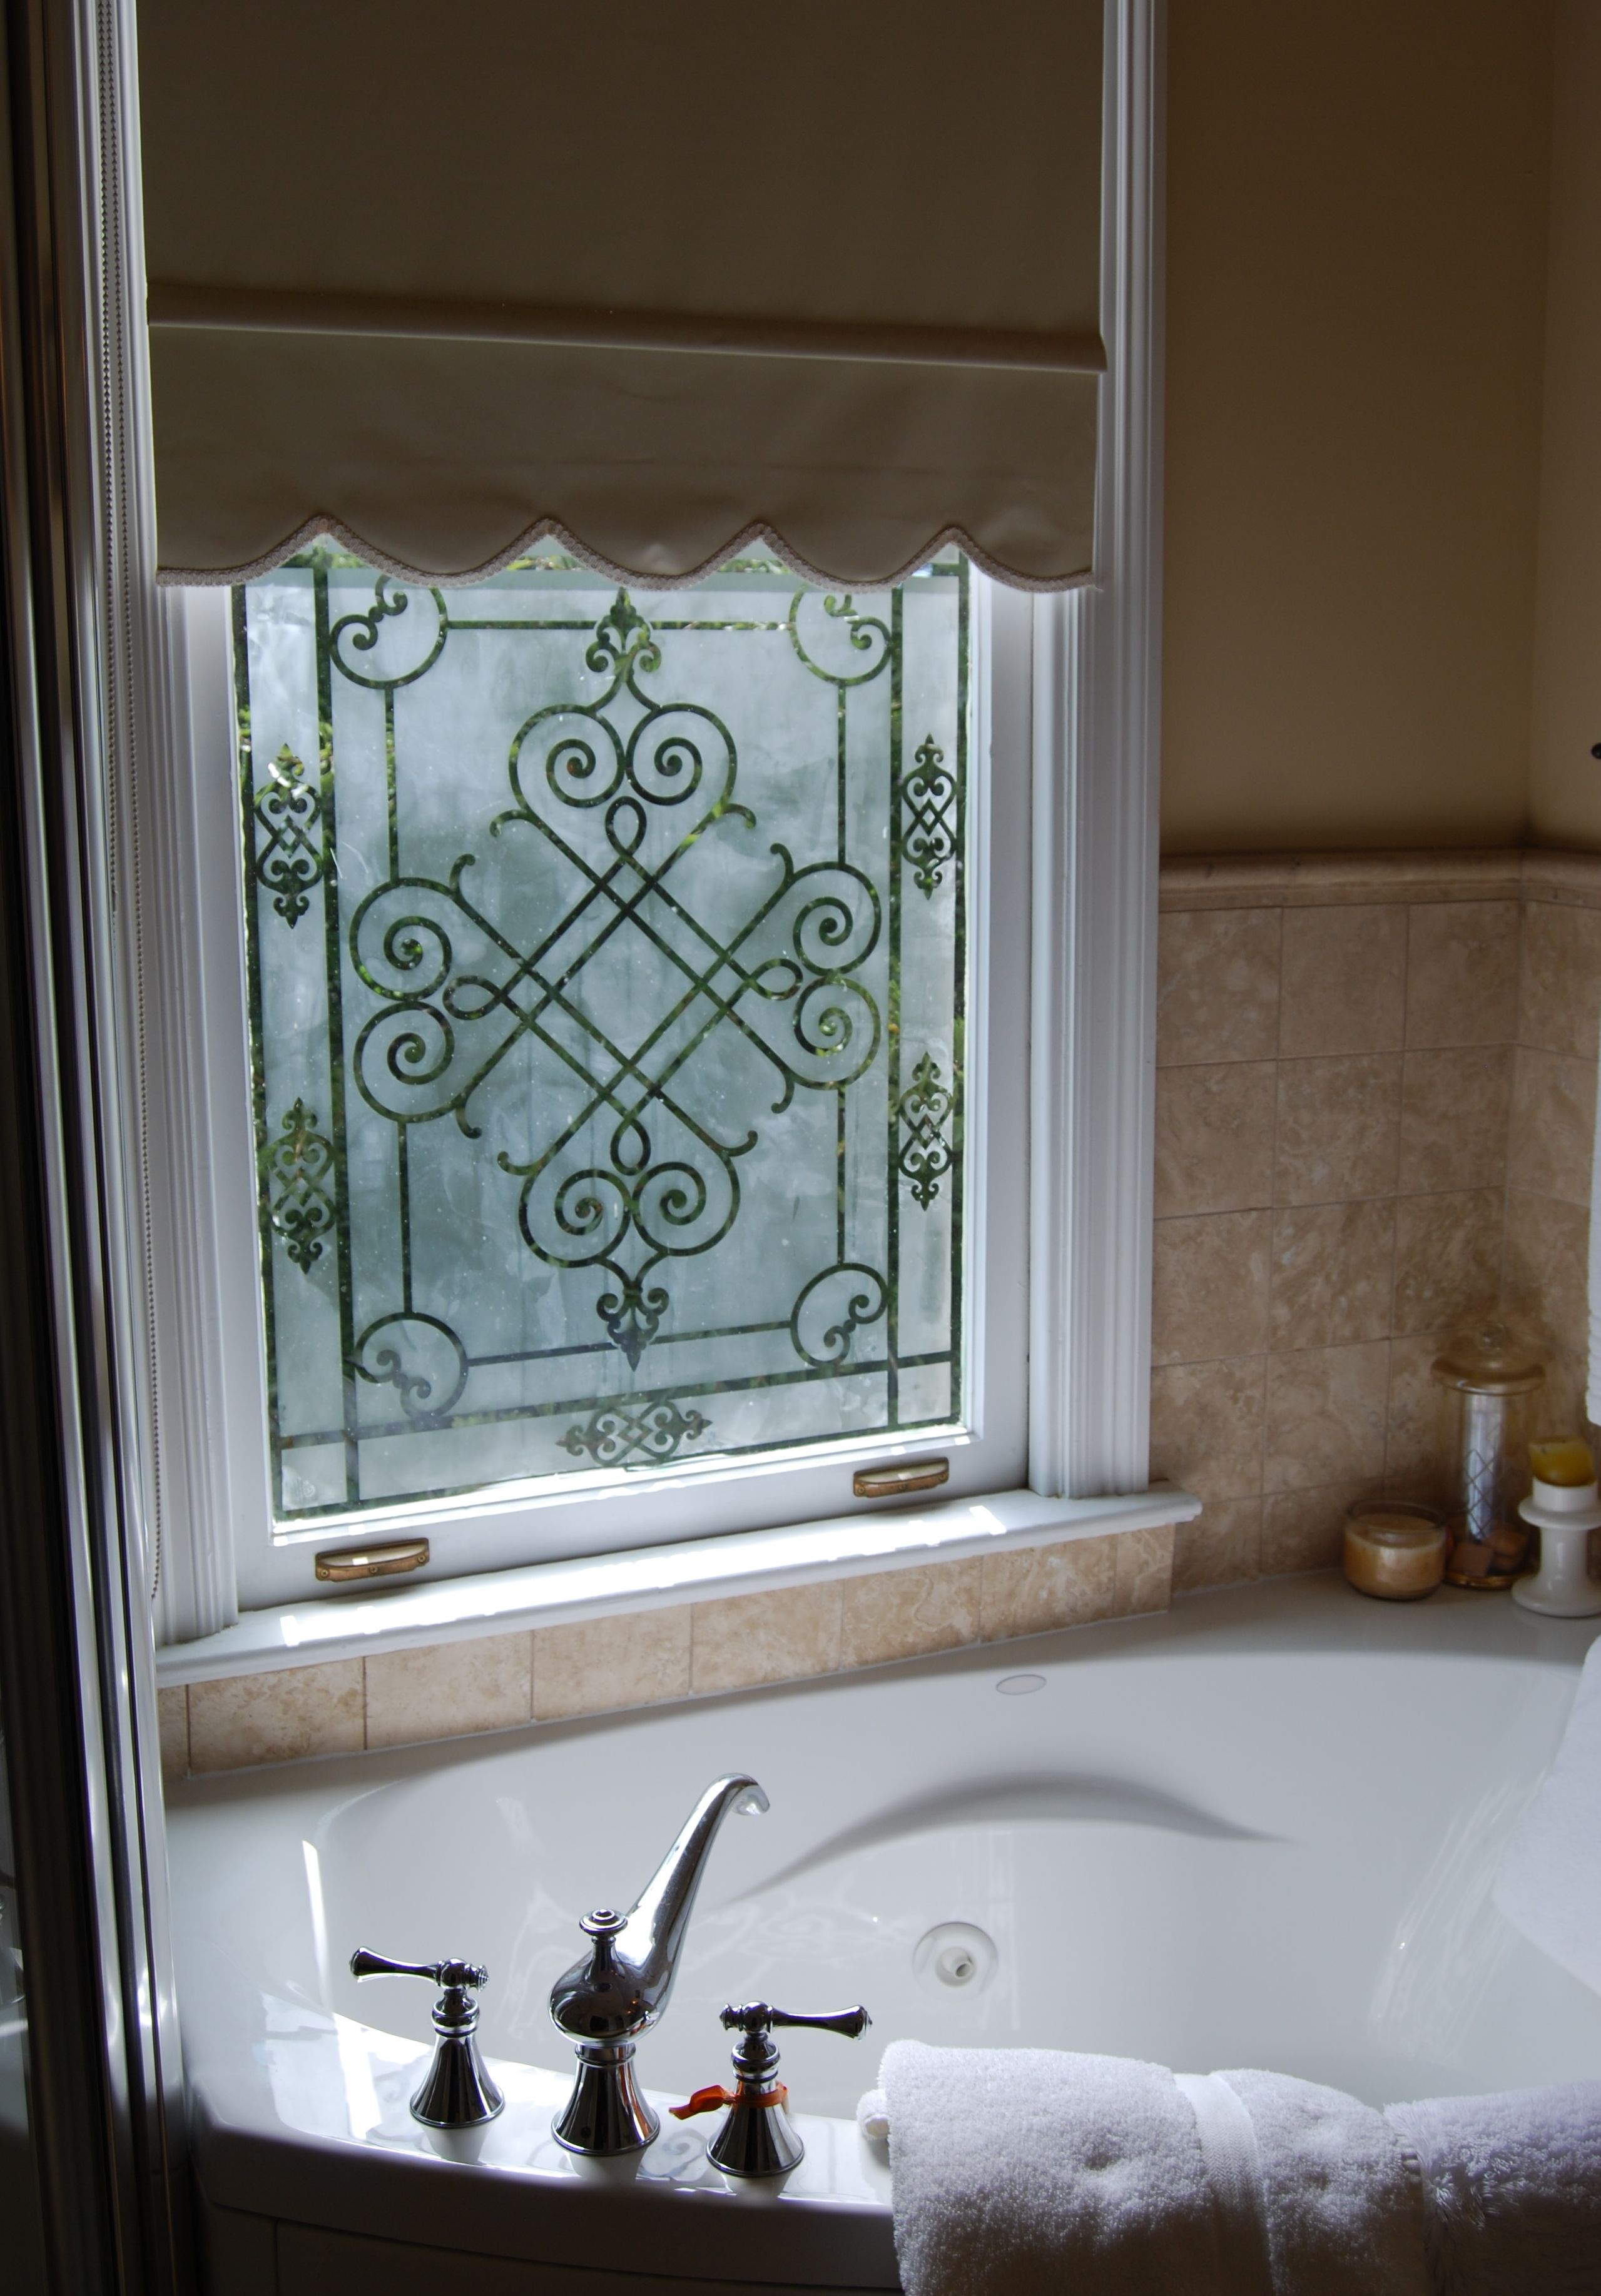 Custom painted glass window with modello designs stencils stenciled glass window pattern achpan121 painted by teri schneider